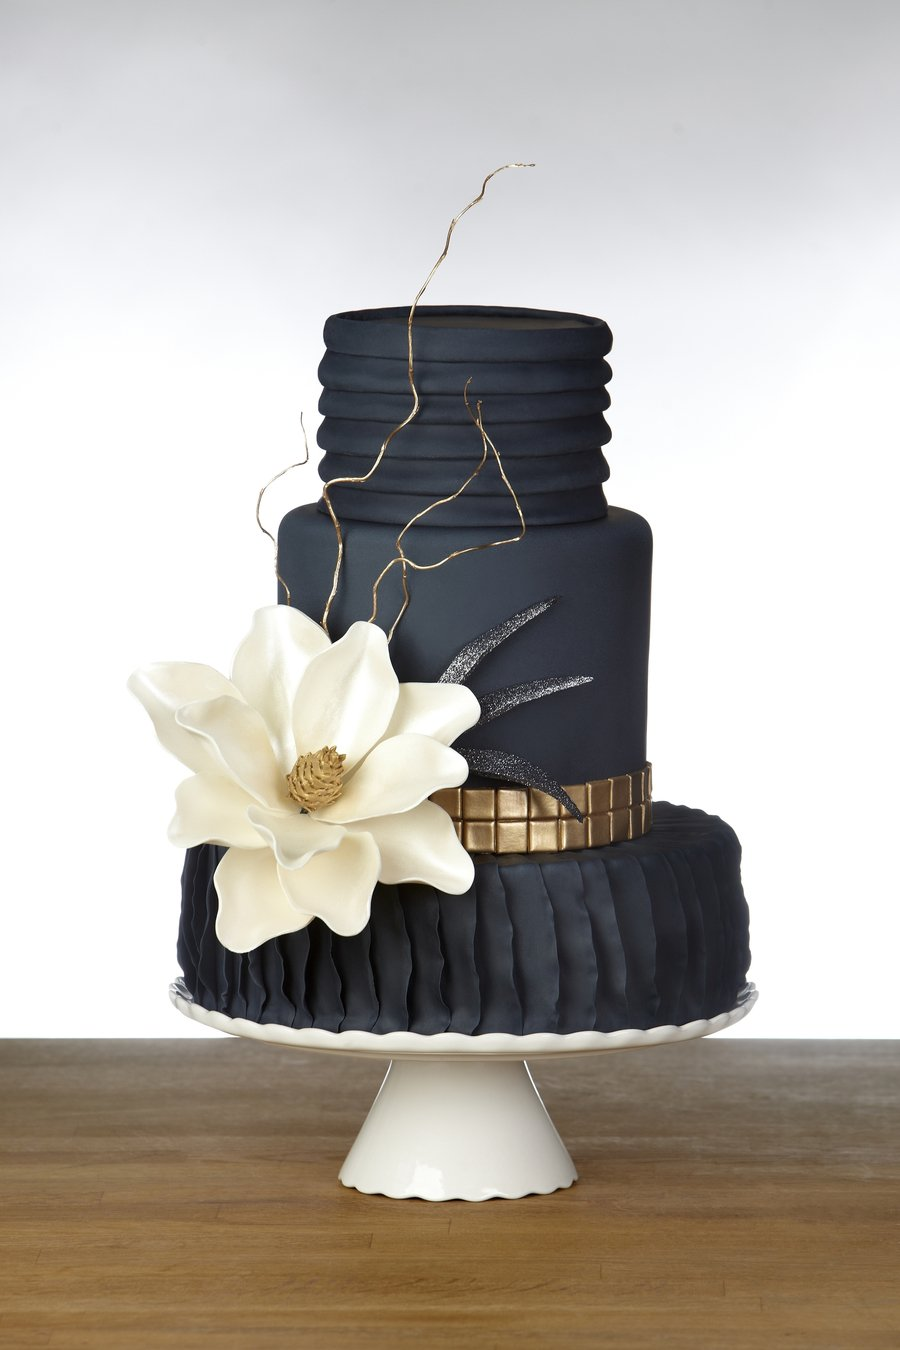 Photo via Cake Central. It was inspired by a dress!